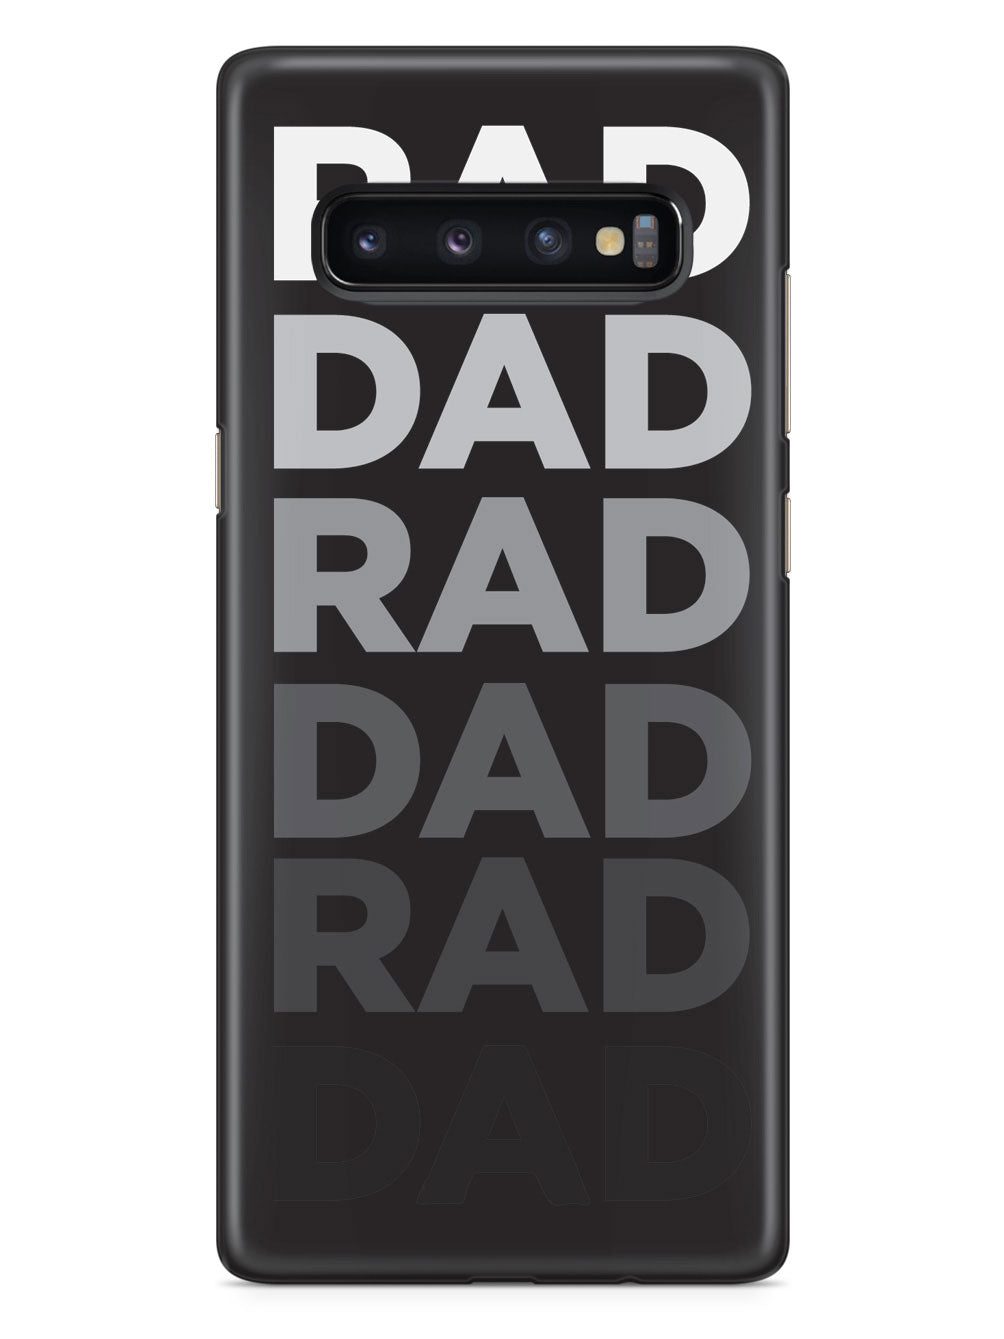 Rad Dad Case